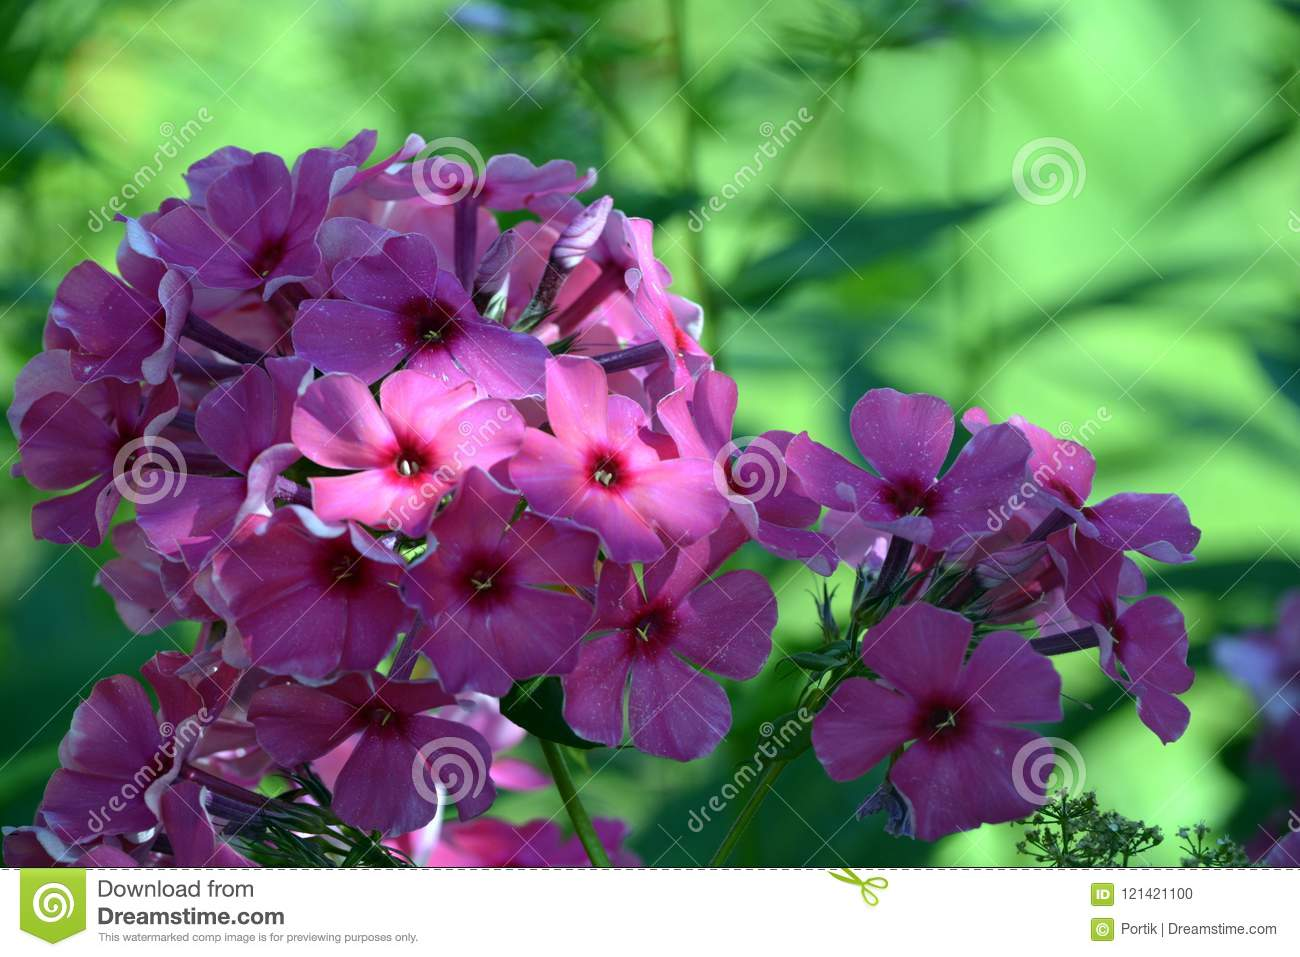 Purple Flowers In The Rays Of Light On A Background Of Green Grass